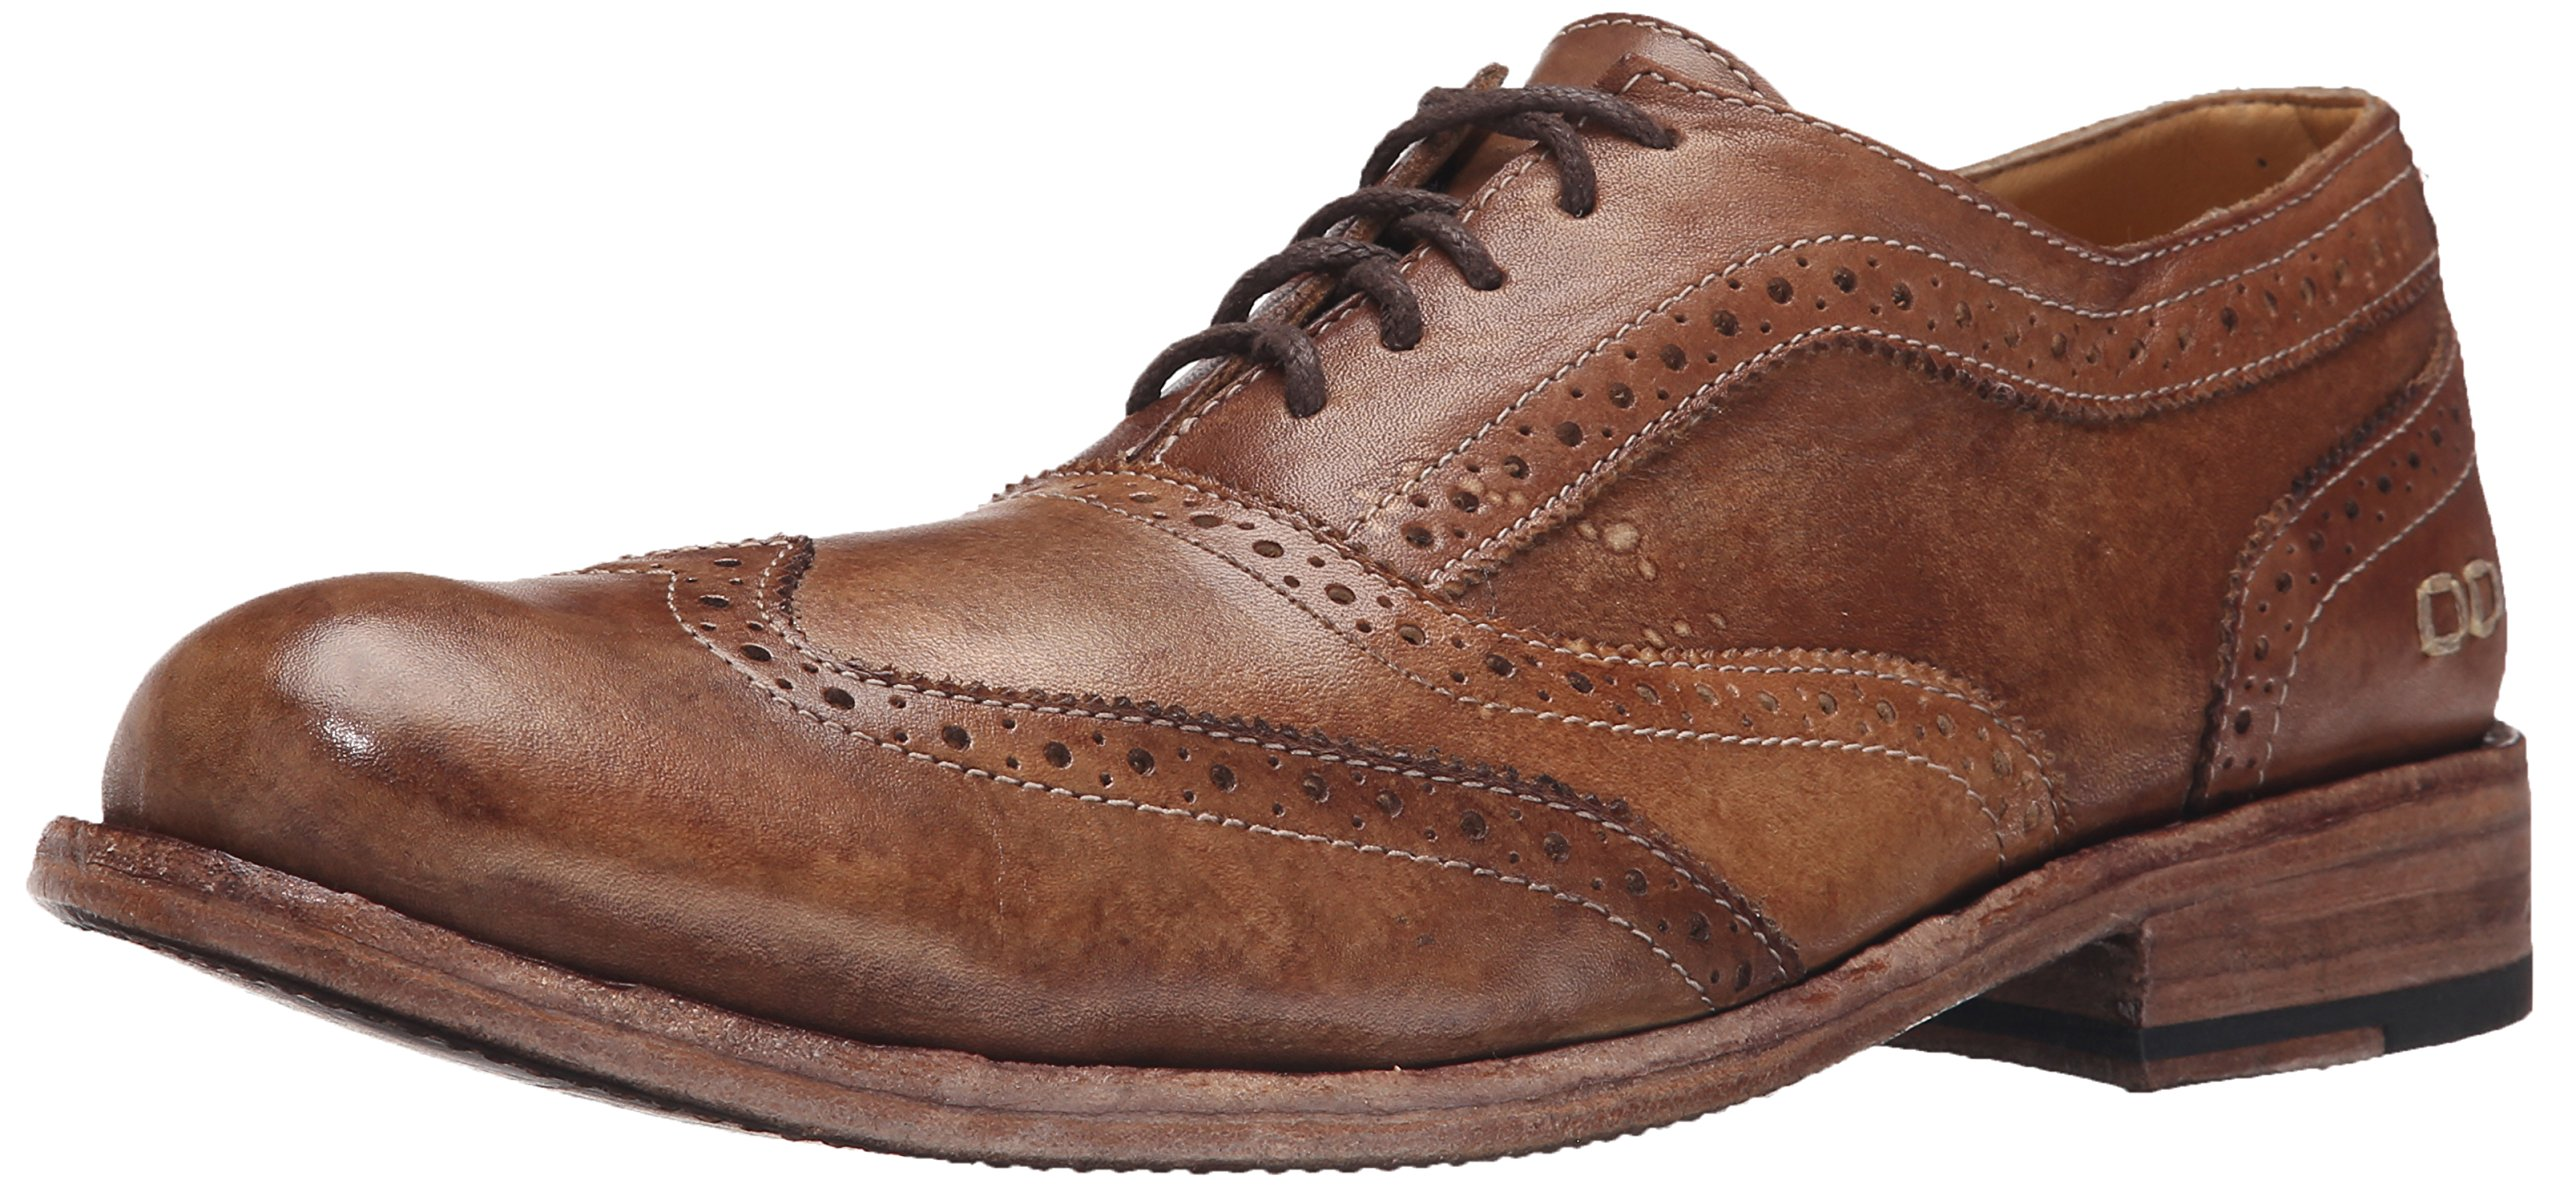 Bed Stu Men's Corsico Oxford, Tan Driftwood, 10 M US by Bed|Stu